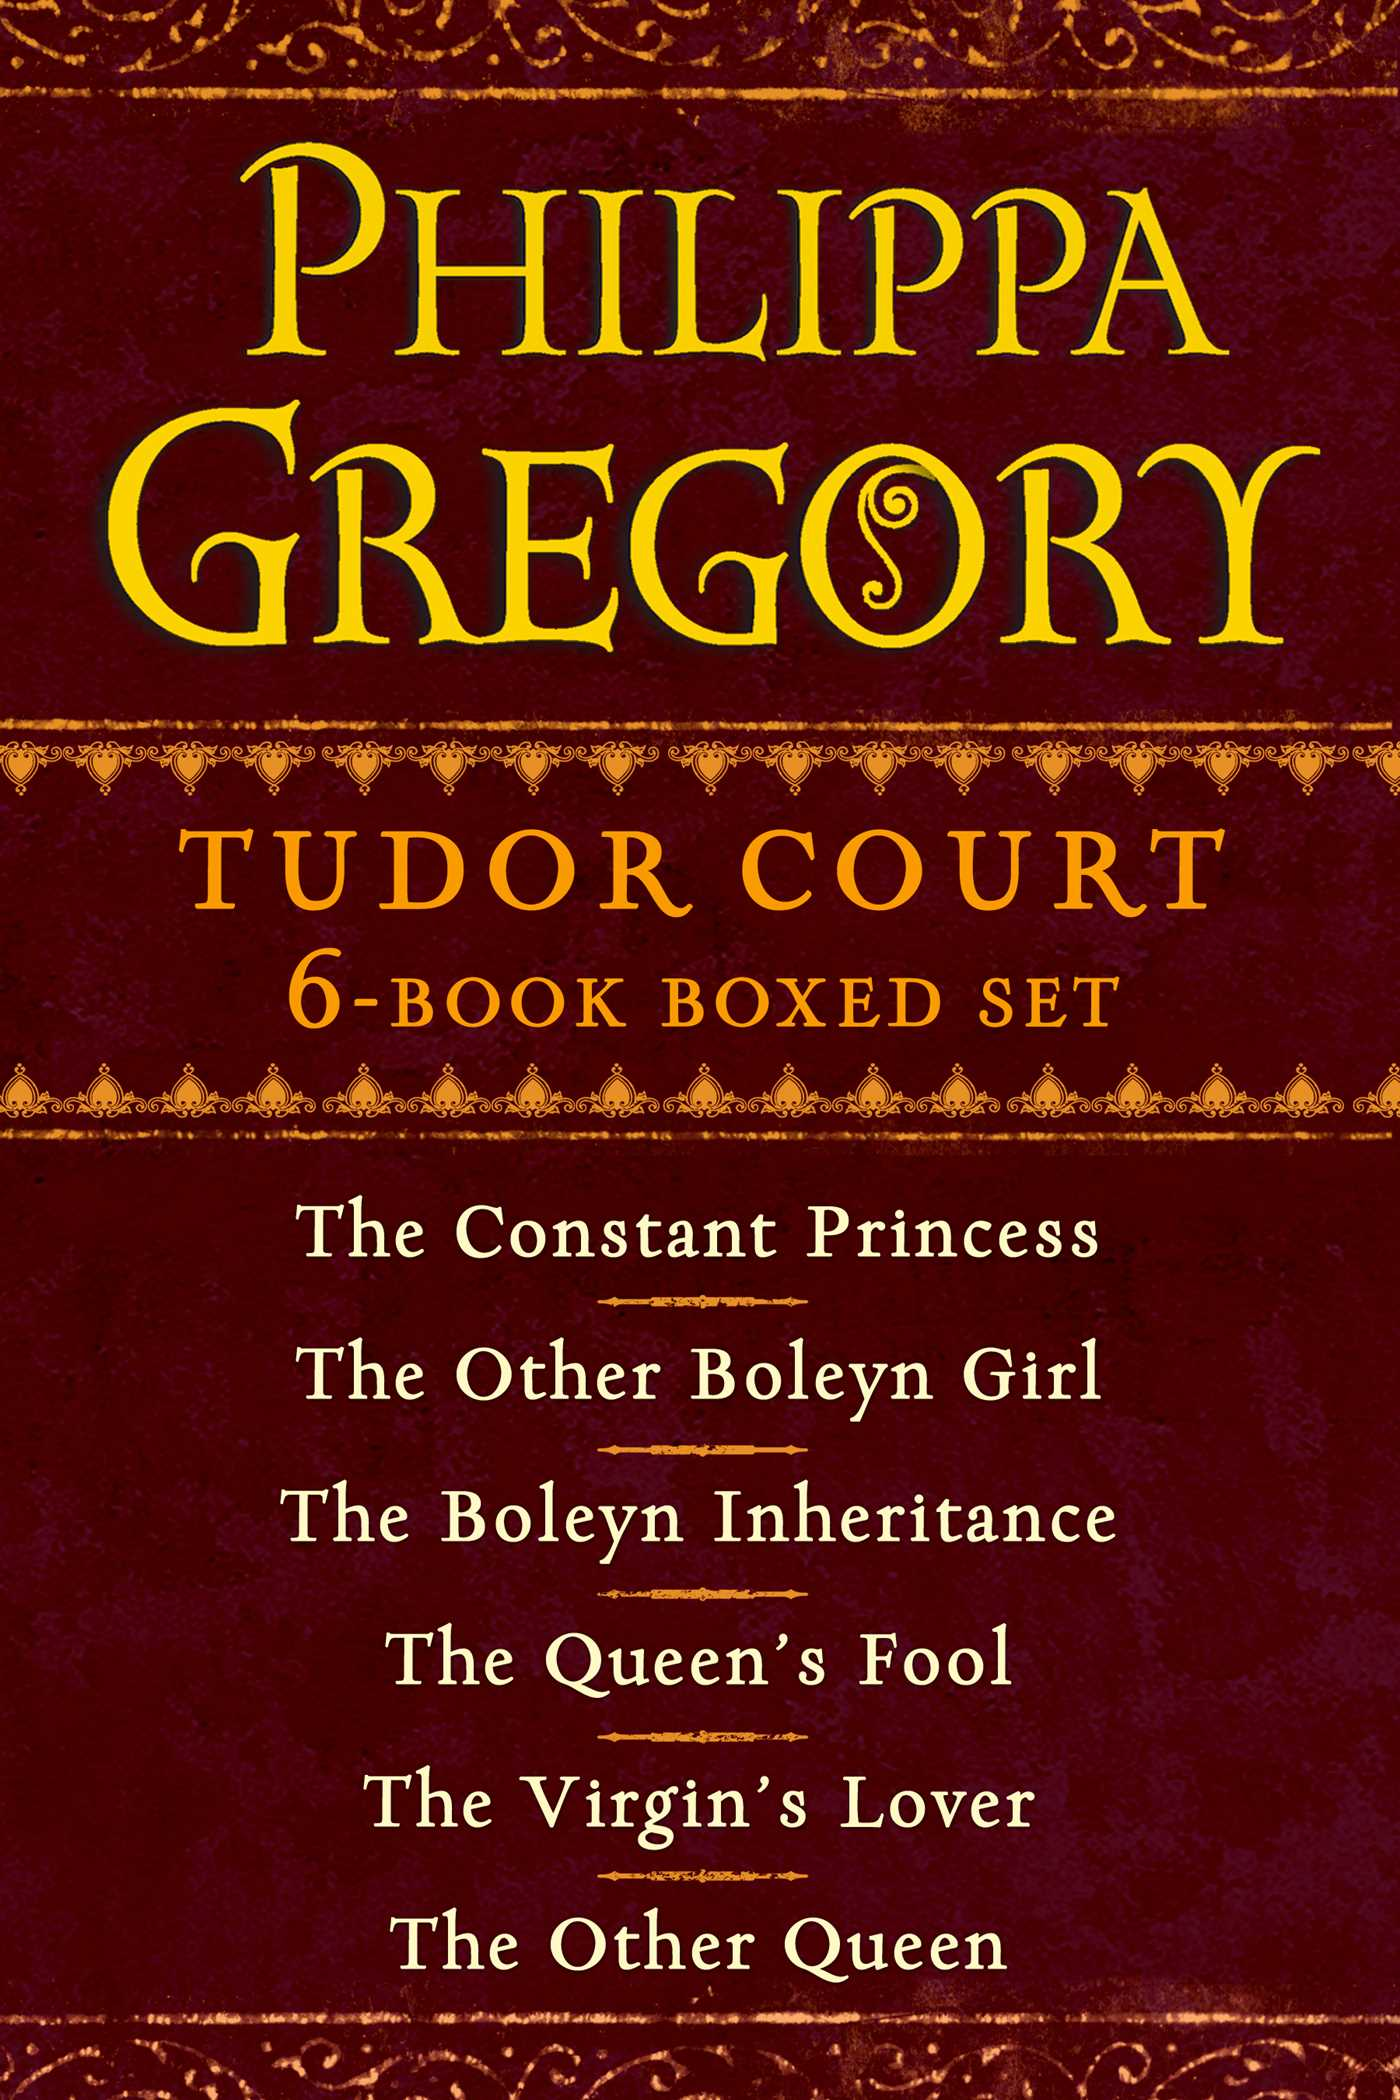 Philippa gregorys tudor court 6 book boxed set 9781451682960 hr